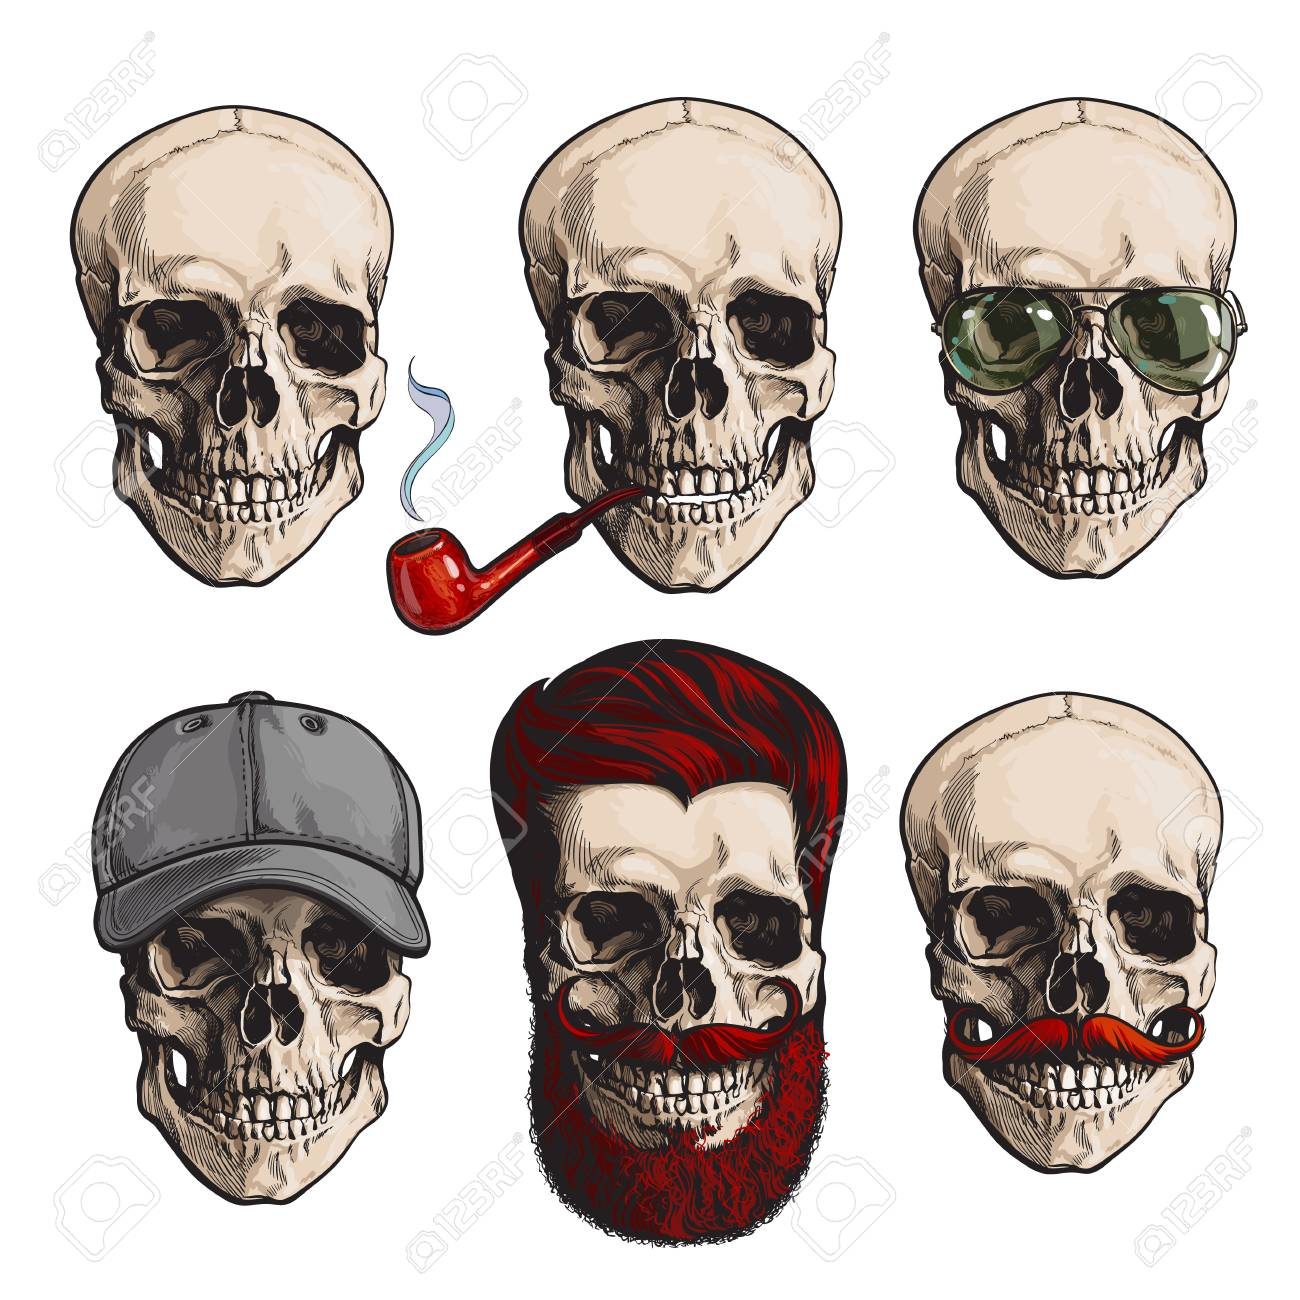 99b33d622b4 Set Of Human Skull Bones With Sunglasses